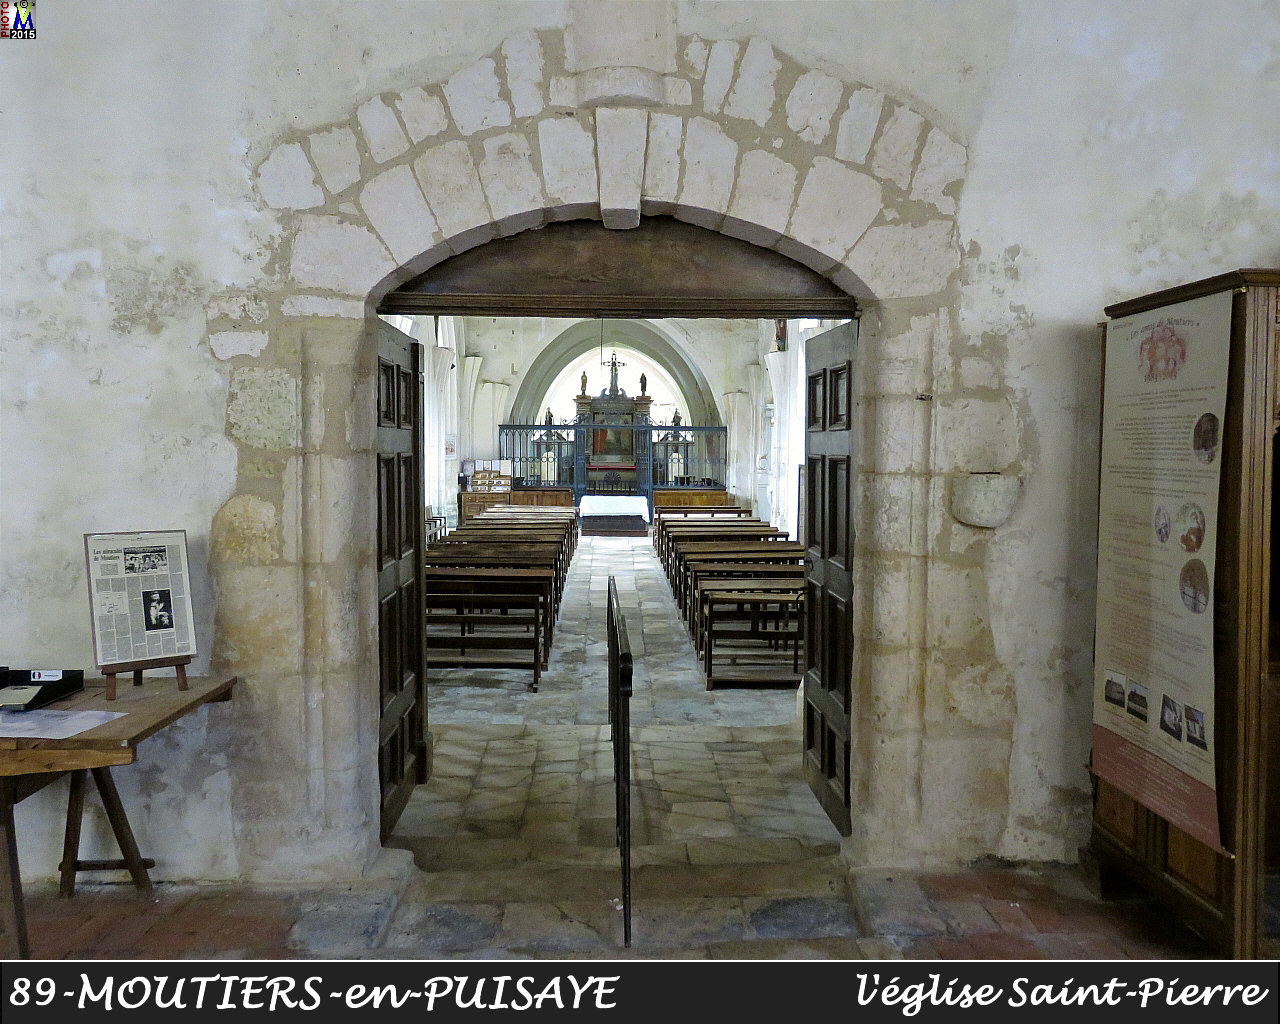 89MOUTIERS-PUISAYE_eglise_204.jpg